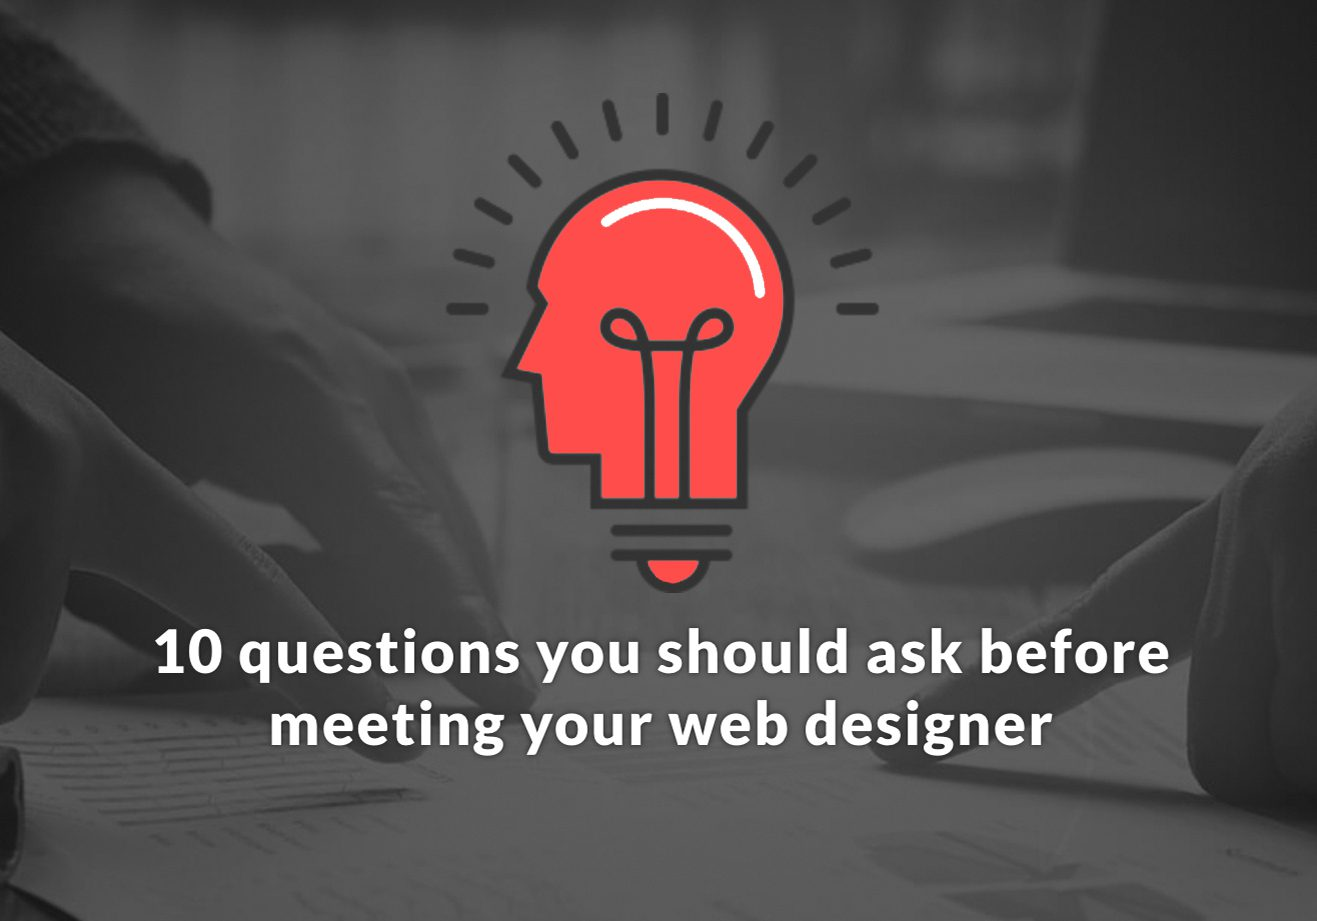 ​10 things to consider before meeting your web designer